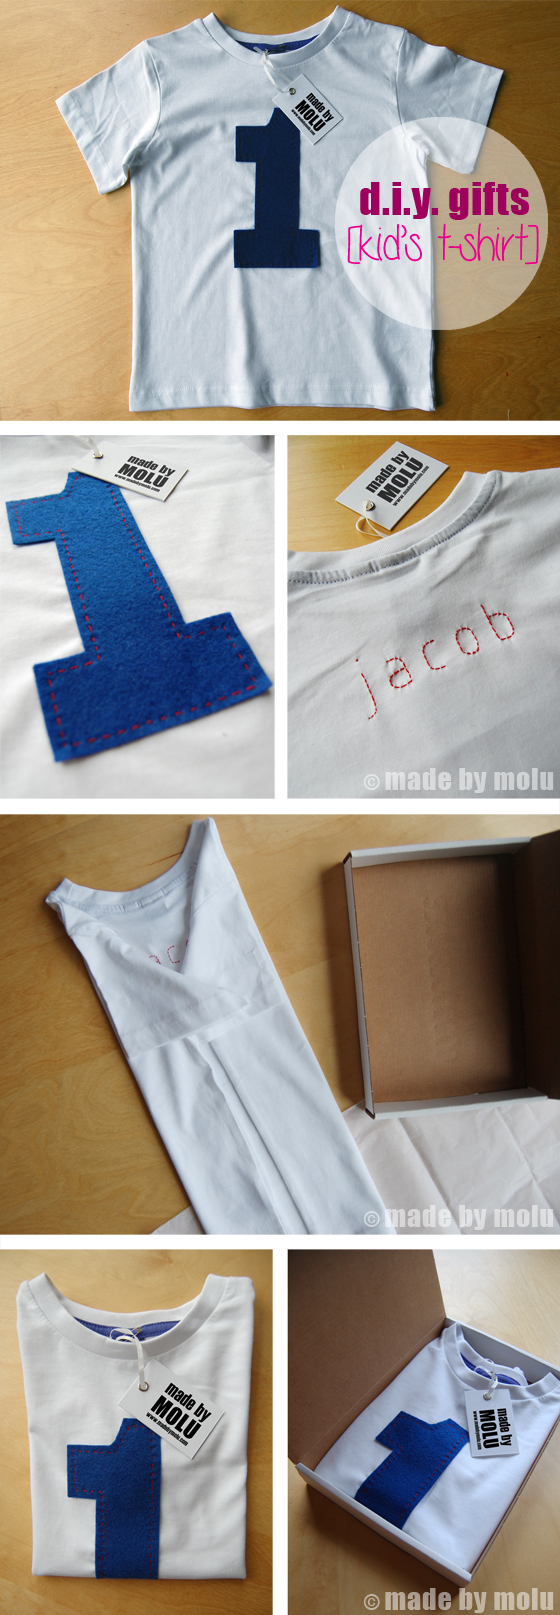 BLOG_STRIP tshirt_jacob low res